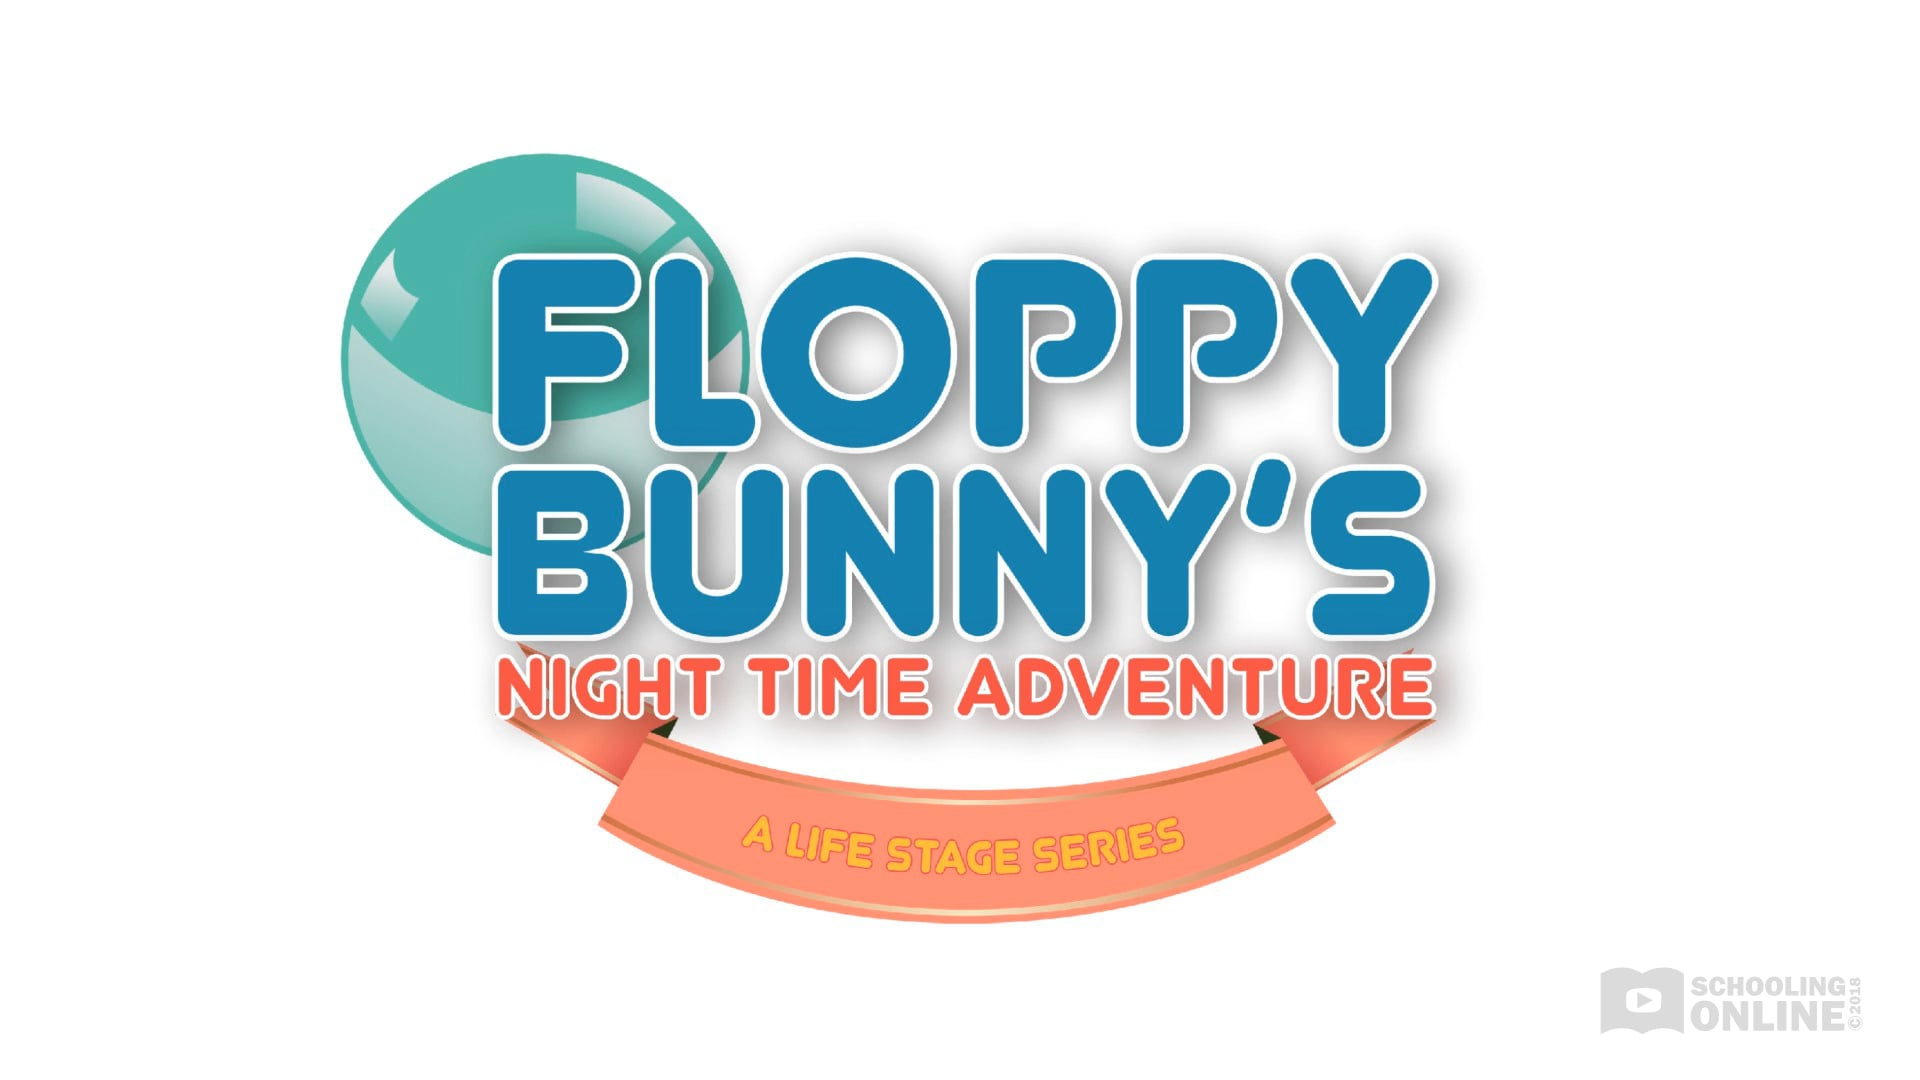 Floppy Bunny's Night Time Adventure - The Life Stage Series